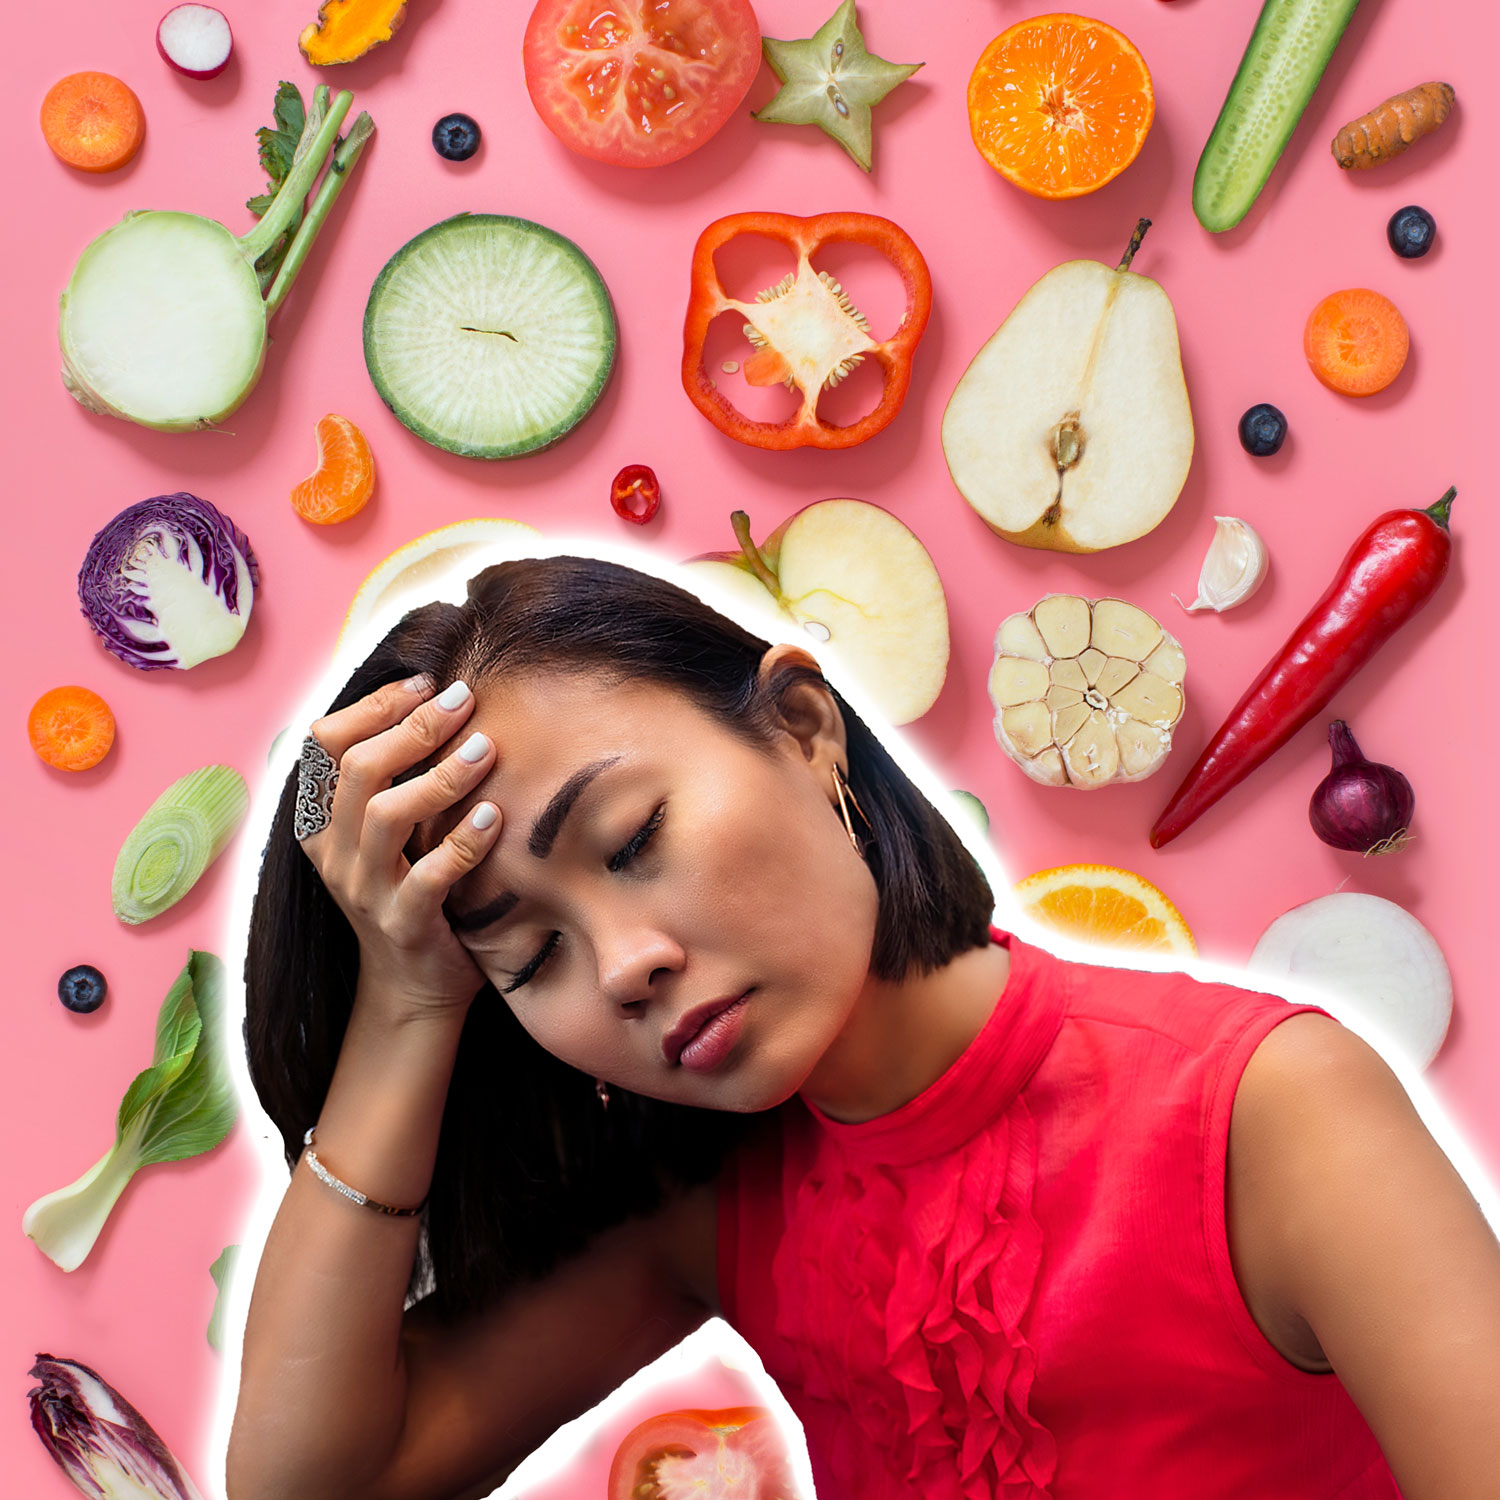 6 Reasons You're Eating Better, but Feeling Worse